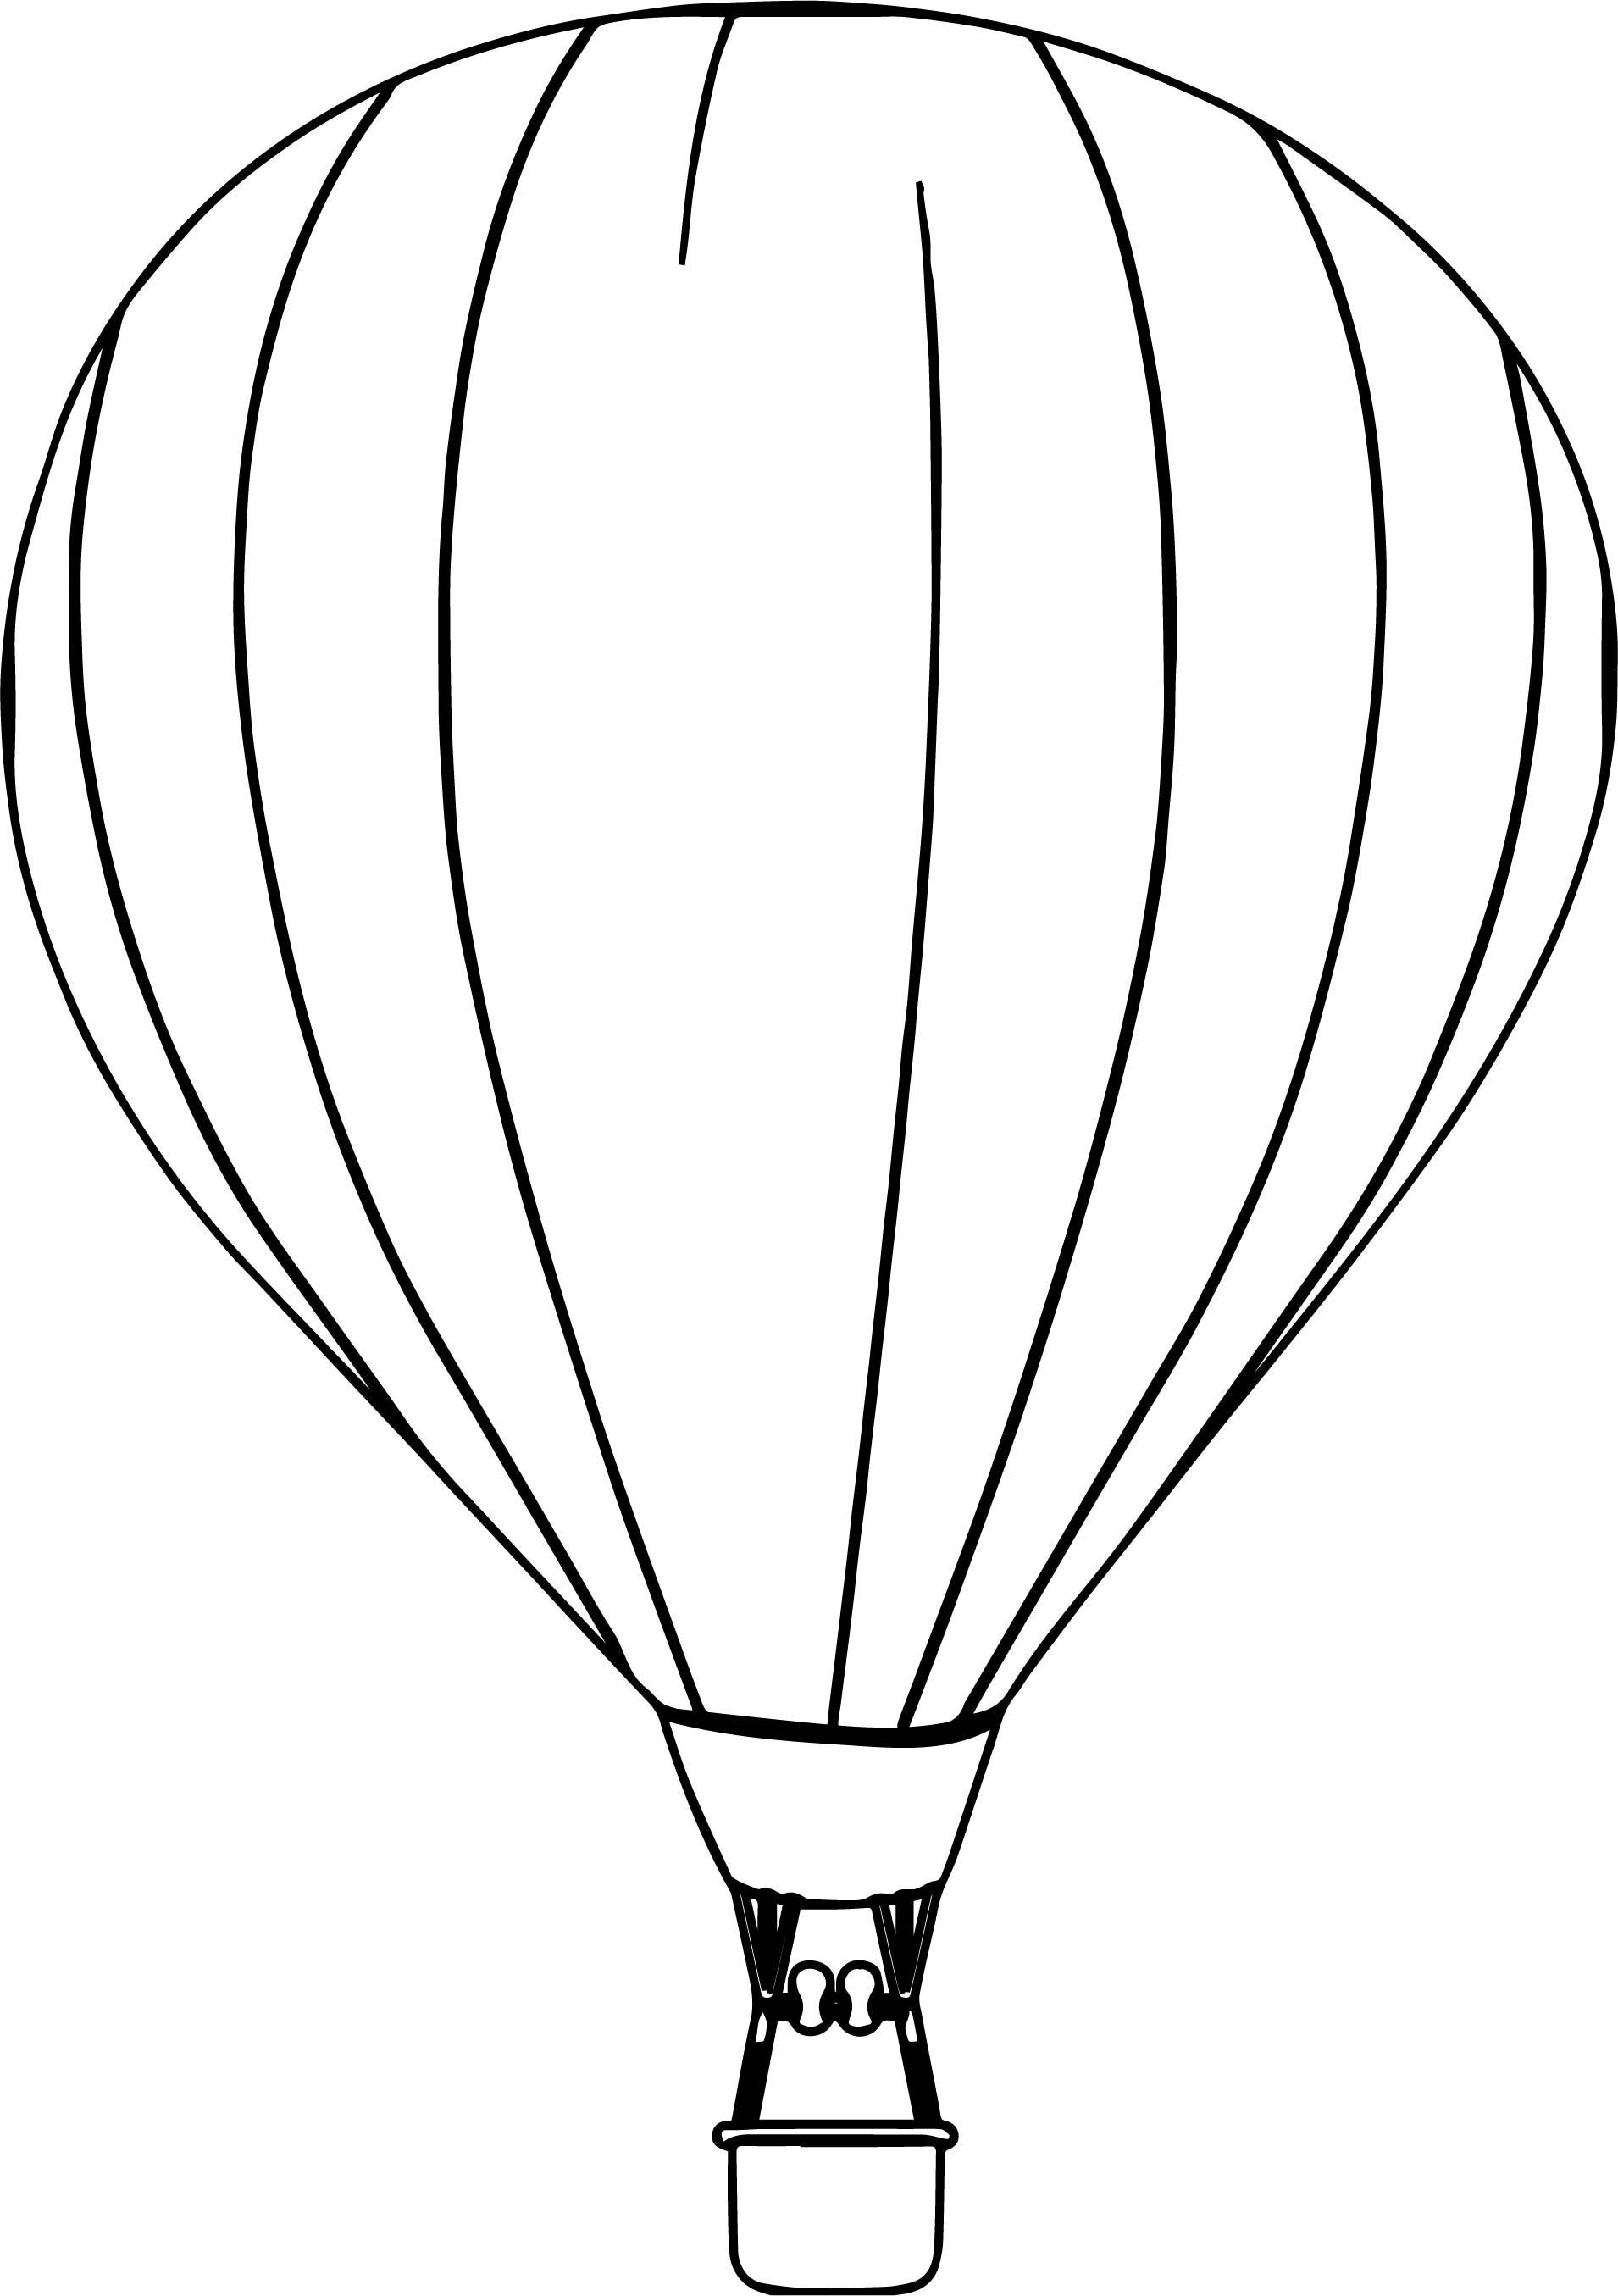 Air Balloon Free Coloring Page